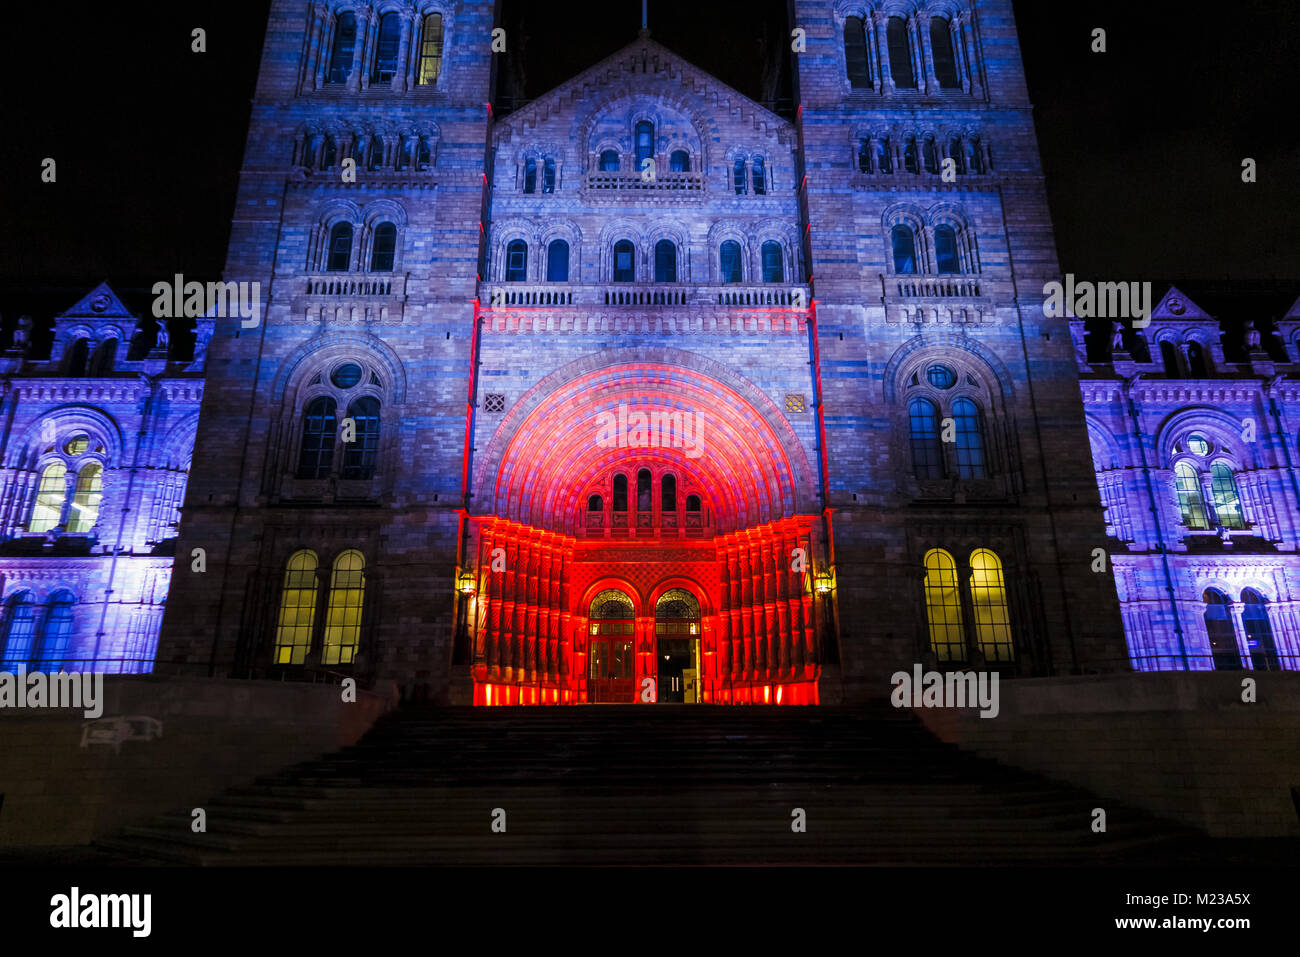 The entrance to the iconic Natural History Museum illuminated in red and blue colours in the evening for an event, Stock Photo